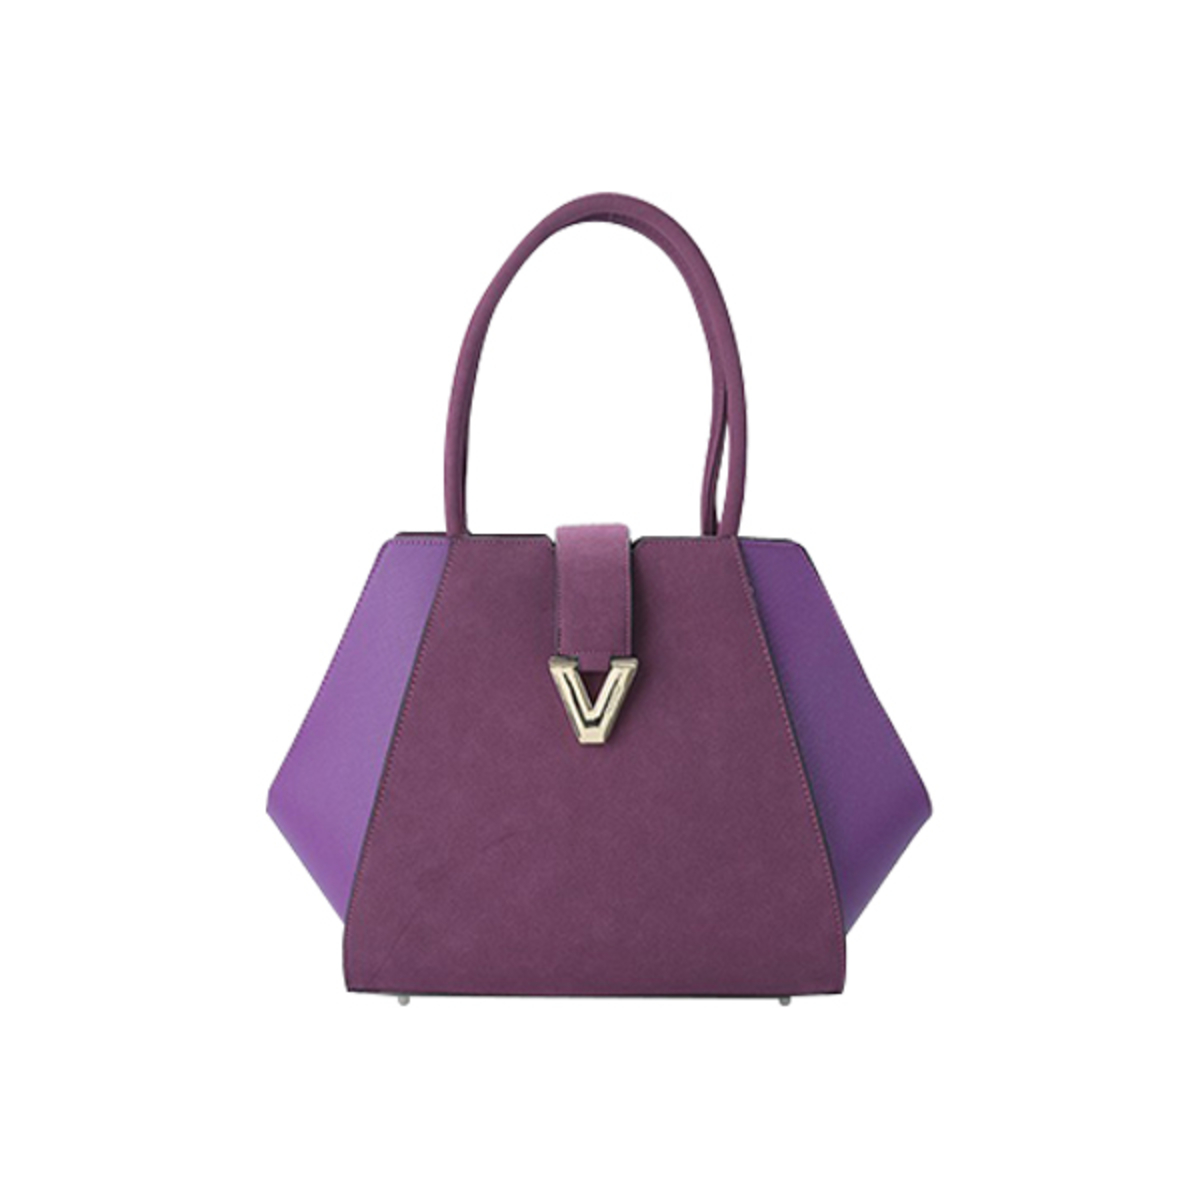 8cd7e42bf8 VICTORIA SLOANE Camden Bag - Juice Purple